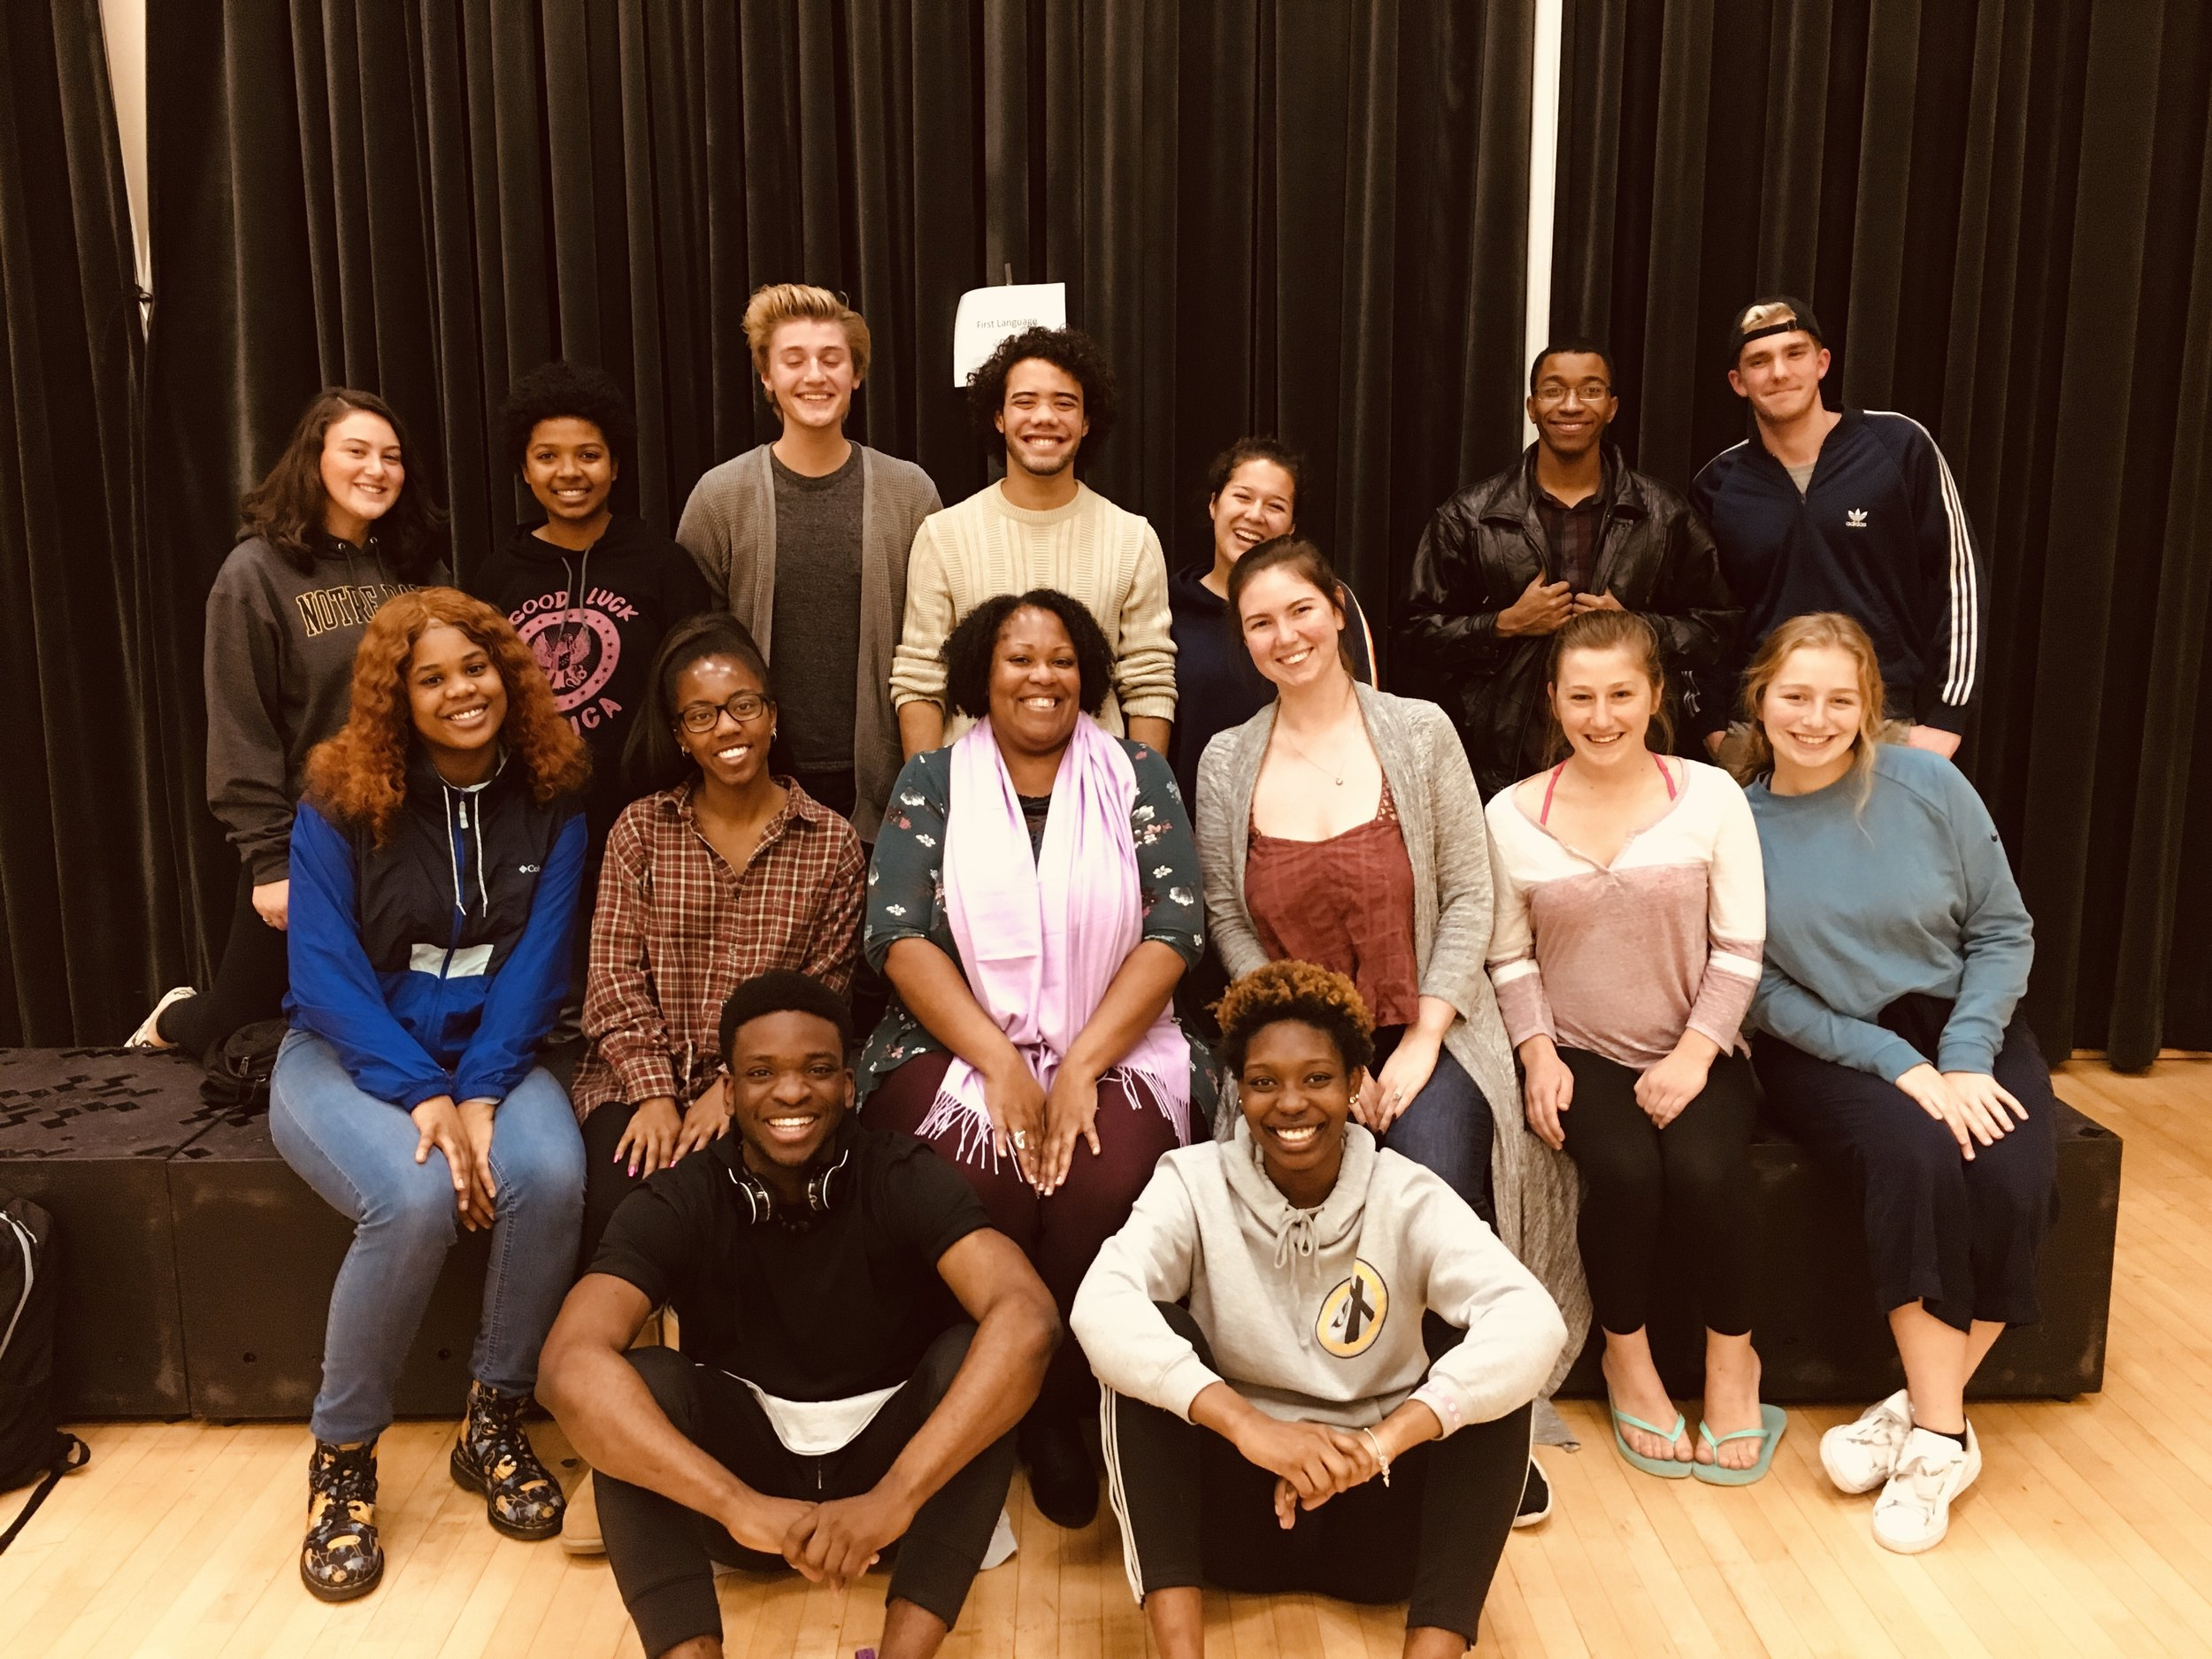 Workshop Leader Jacqueline Lawton and Co-Director Ruthie Allen with the Cast of the 2019 MTM Production